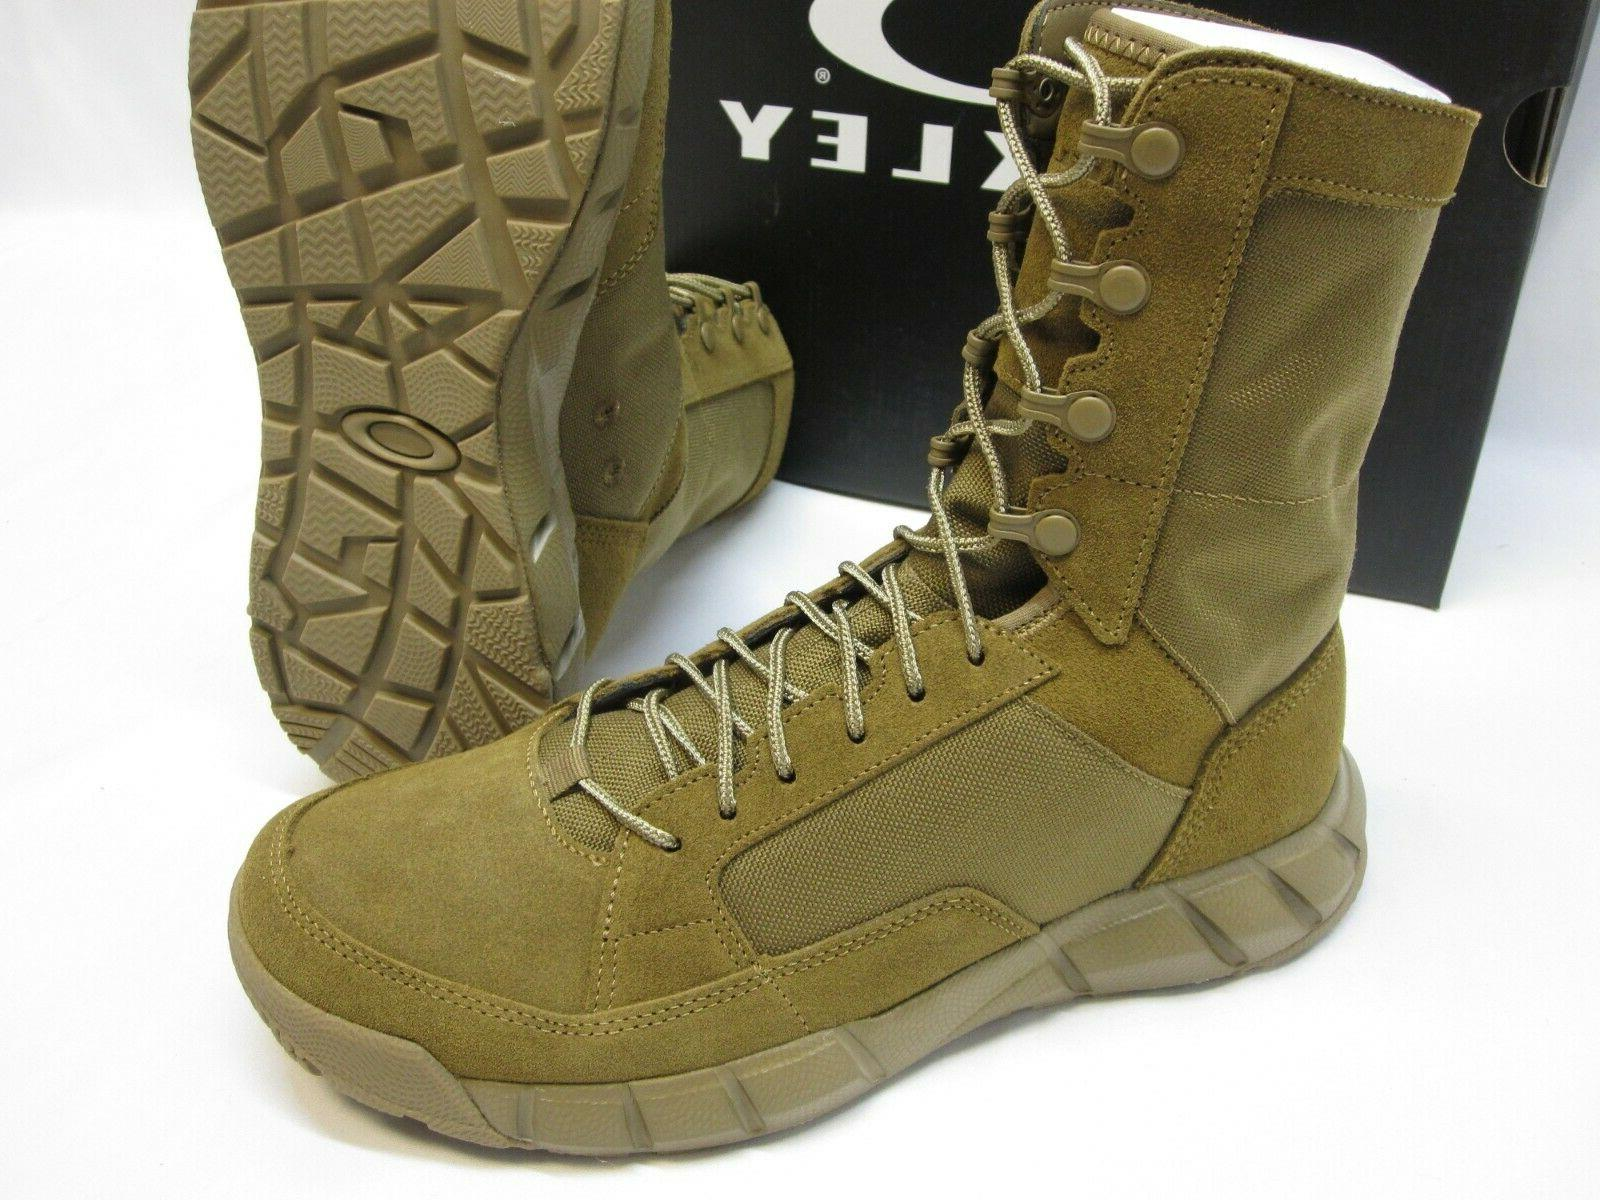 OAKLEY ASSAULT 2 ARMY MILITARY BOOTS COYOTE BROWN